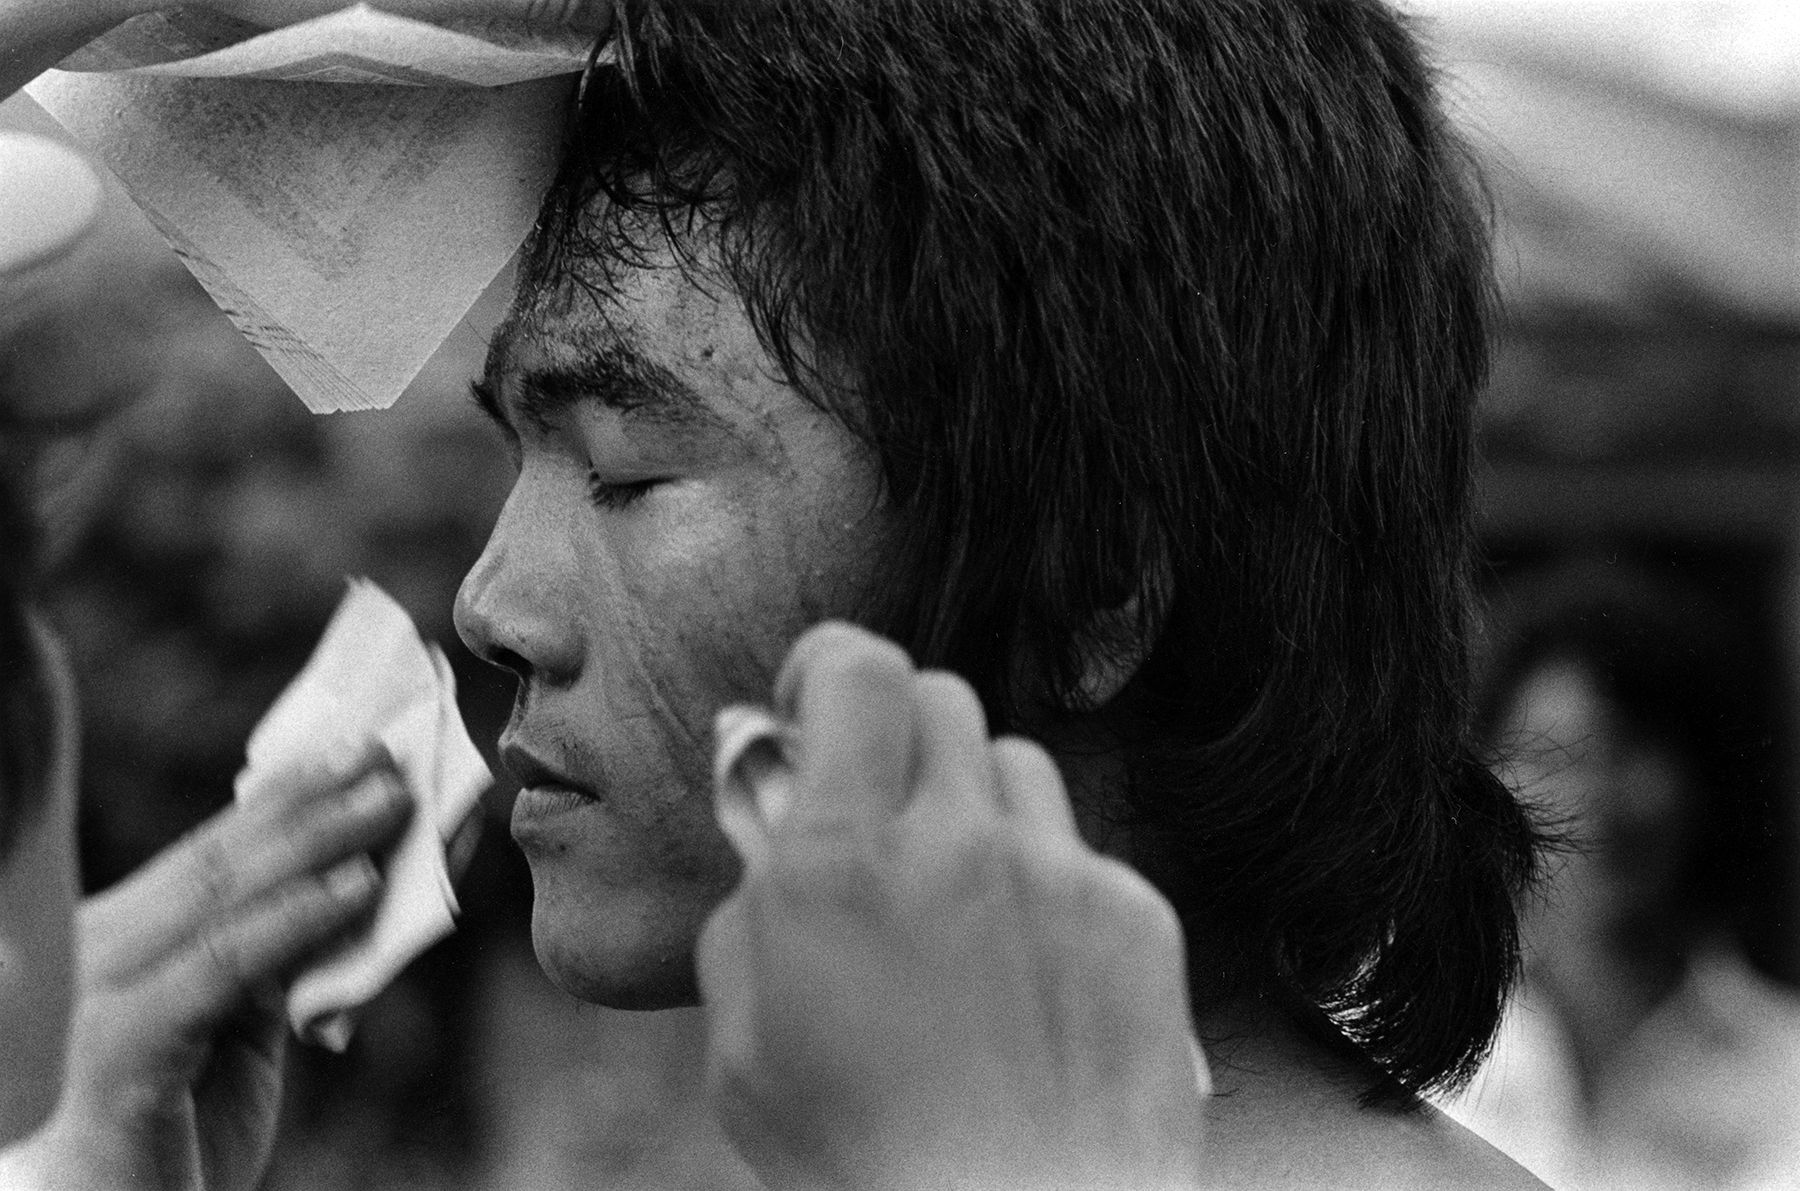 In 1985, Tom Ferentz travelled to Taiwan to exhibit his photographs at the American Cultural Center Gallery in Taipei. Through the exhibition, he got to know several photographers. He joined some to visit a small town outside of Kao Hsiang, which was having a ceremonial day. The whole town was involved. Parades with dancers traversed the streets. Occasionally, they stopped to deeply breathe in smoke from pots with sticks of some kind of incense. It appeared to augment their dancing and they entered a trance-like state. Stylized martial arts-like movements were augmented by flagellation: striking themselves on the back with thorny objects, drawing blood.  Children participated in the procession, not the flagellation. Monitors closely watched each one. They had an intense concern for the children.  Tom Ferentz is Founder and Artistic Director of Sixth Street Photography Workshop and 6th On 7th Gallery. In those days, he was more or less a documentary style photographer. Since, he branched out to other areas, including poetic narrative  photo-text  pieces, theatrical figure studies and the writing of fiction.  In Taiwan 1995  was photographed with film.